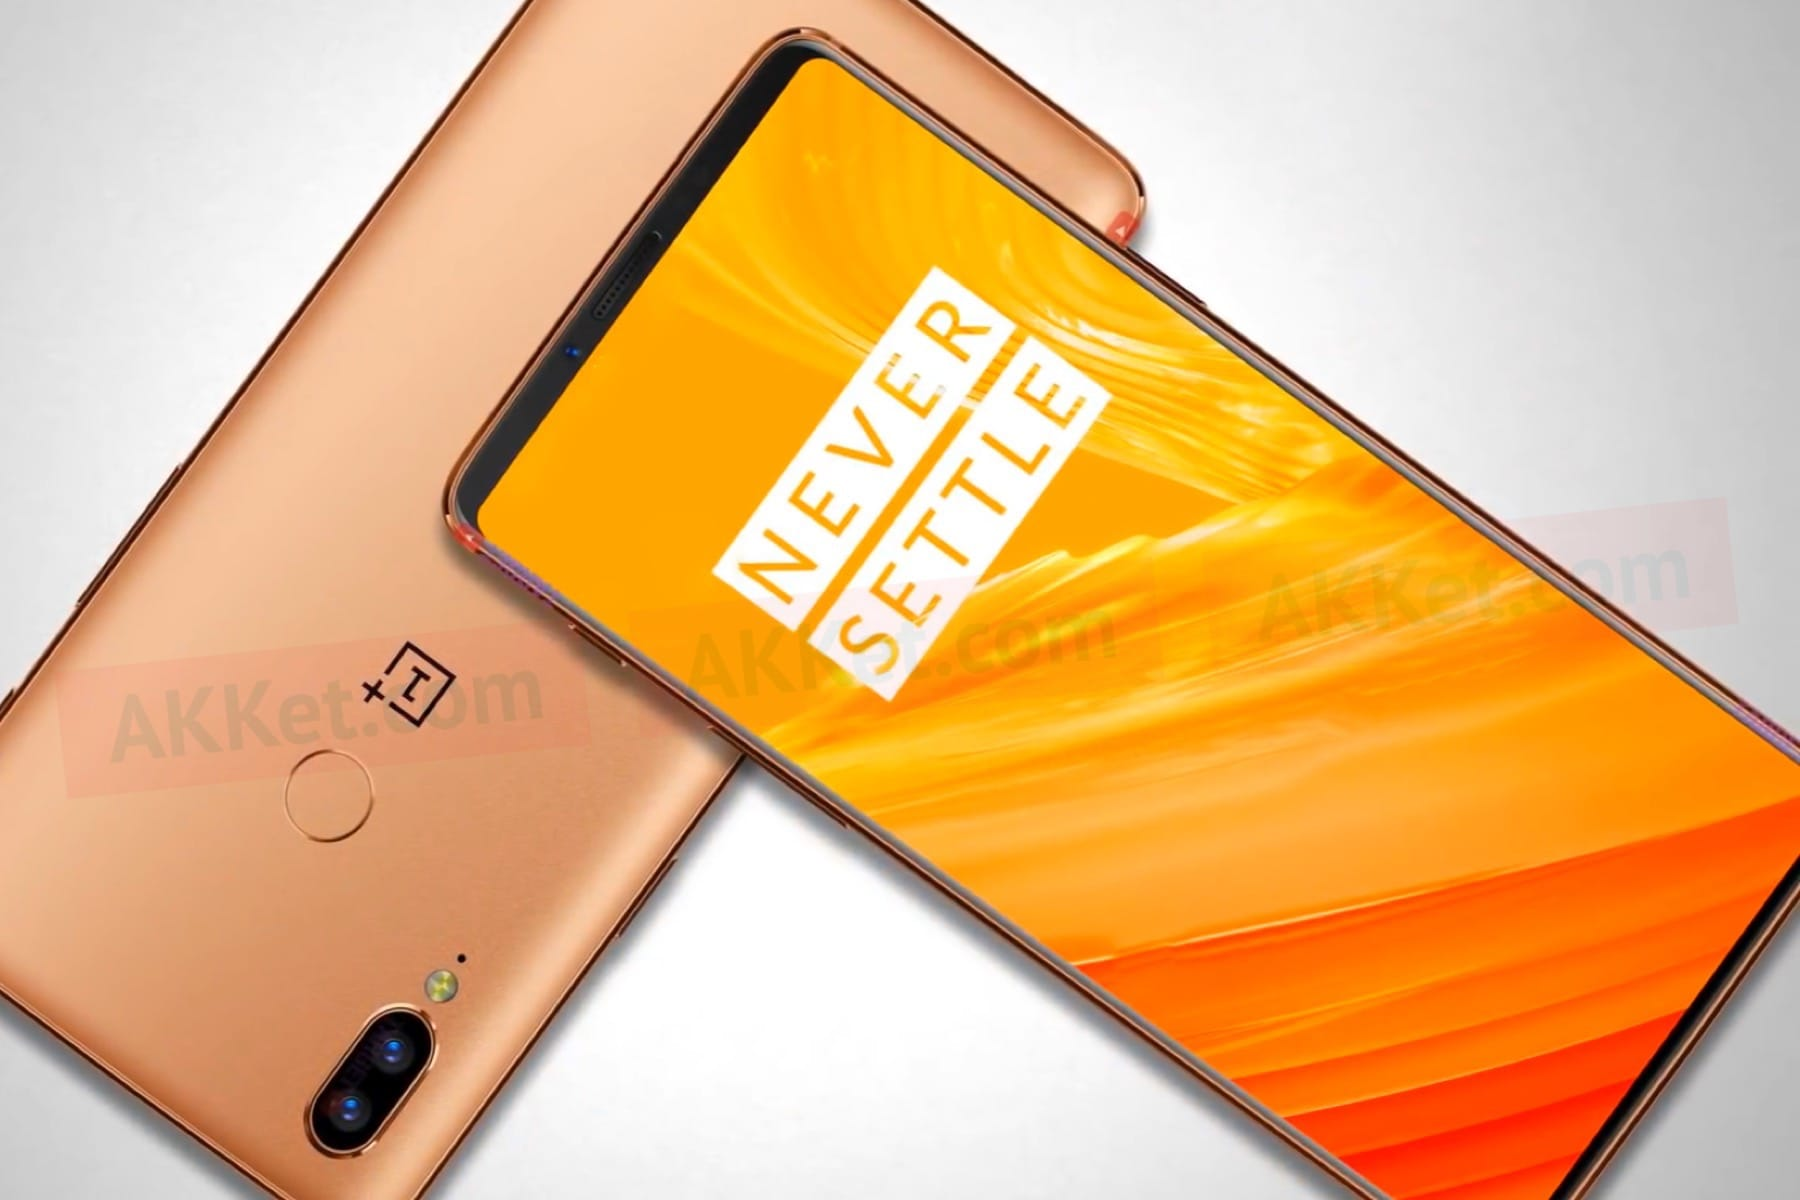 In these days of exhaustive leaks and unrelenting phone rumors OnePlus just wants to tell you about its new phone Specifically that its updated flagship